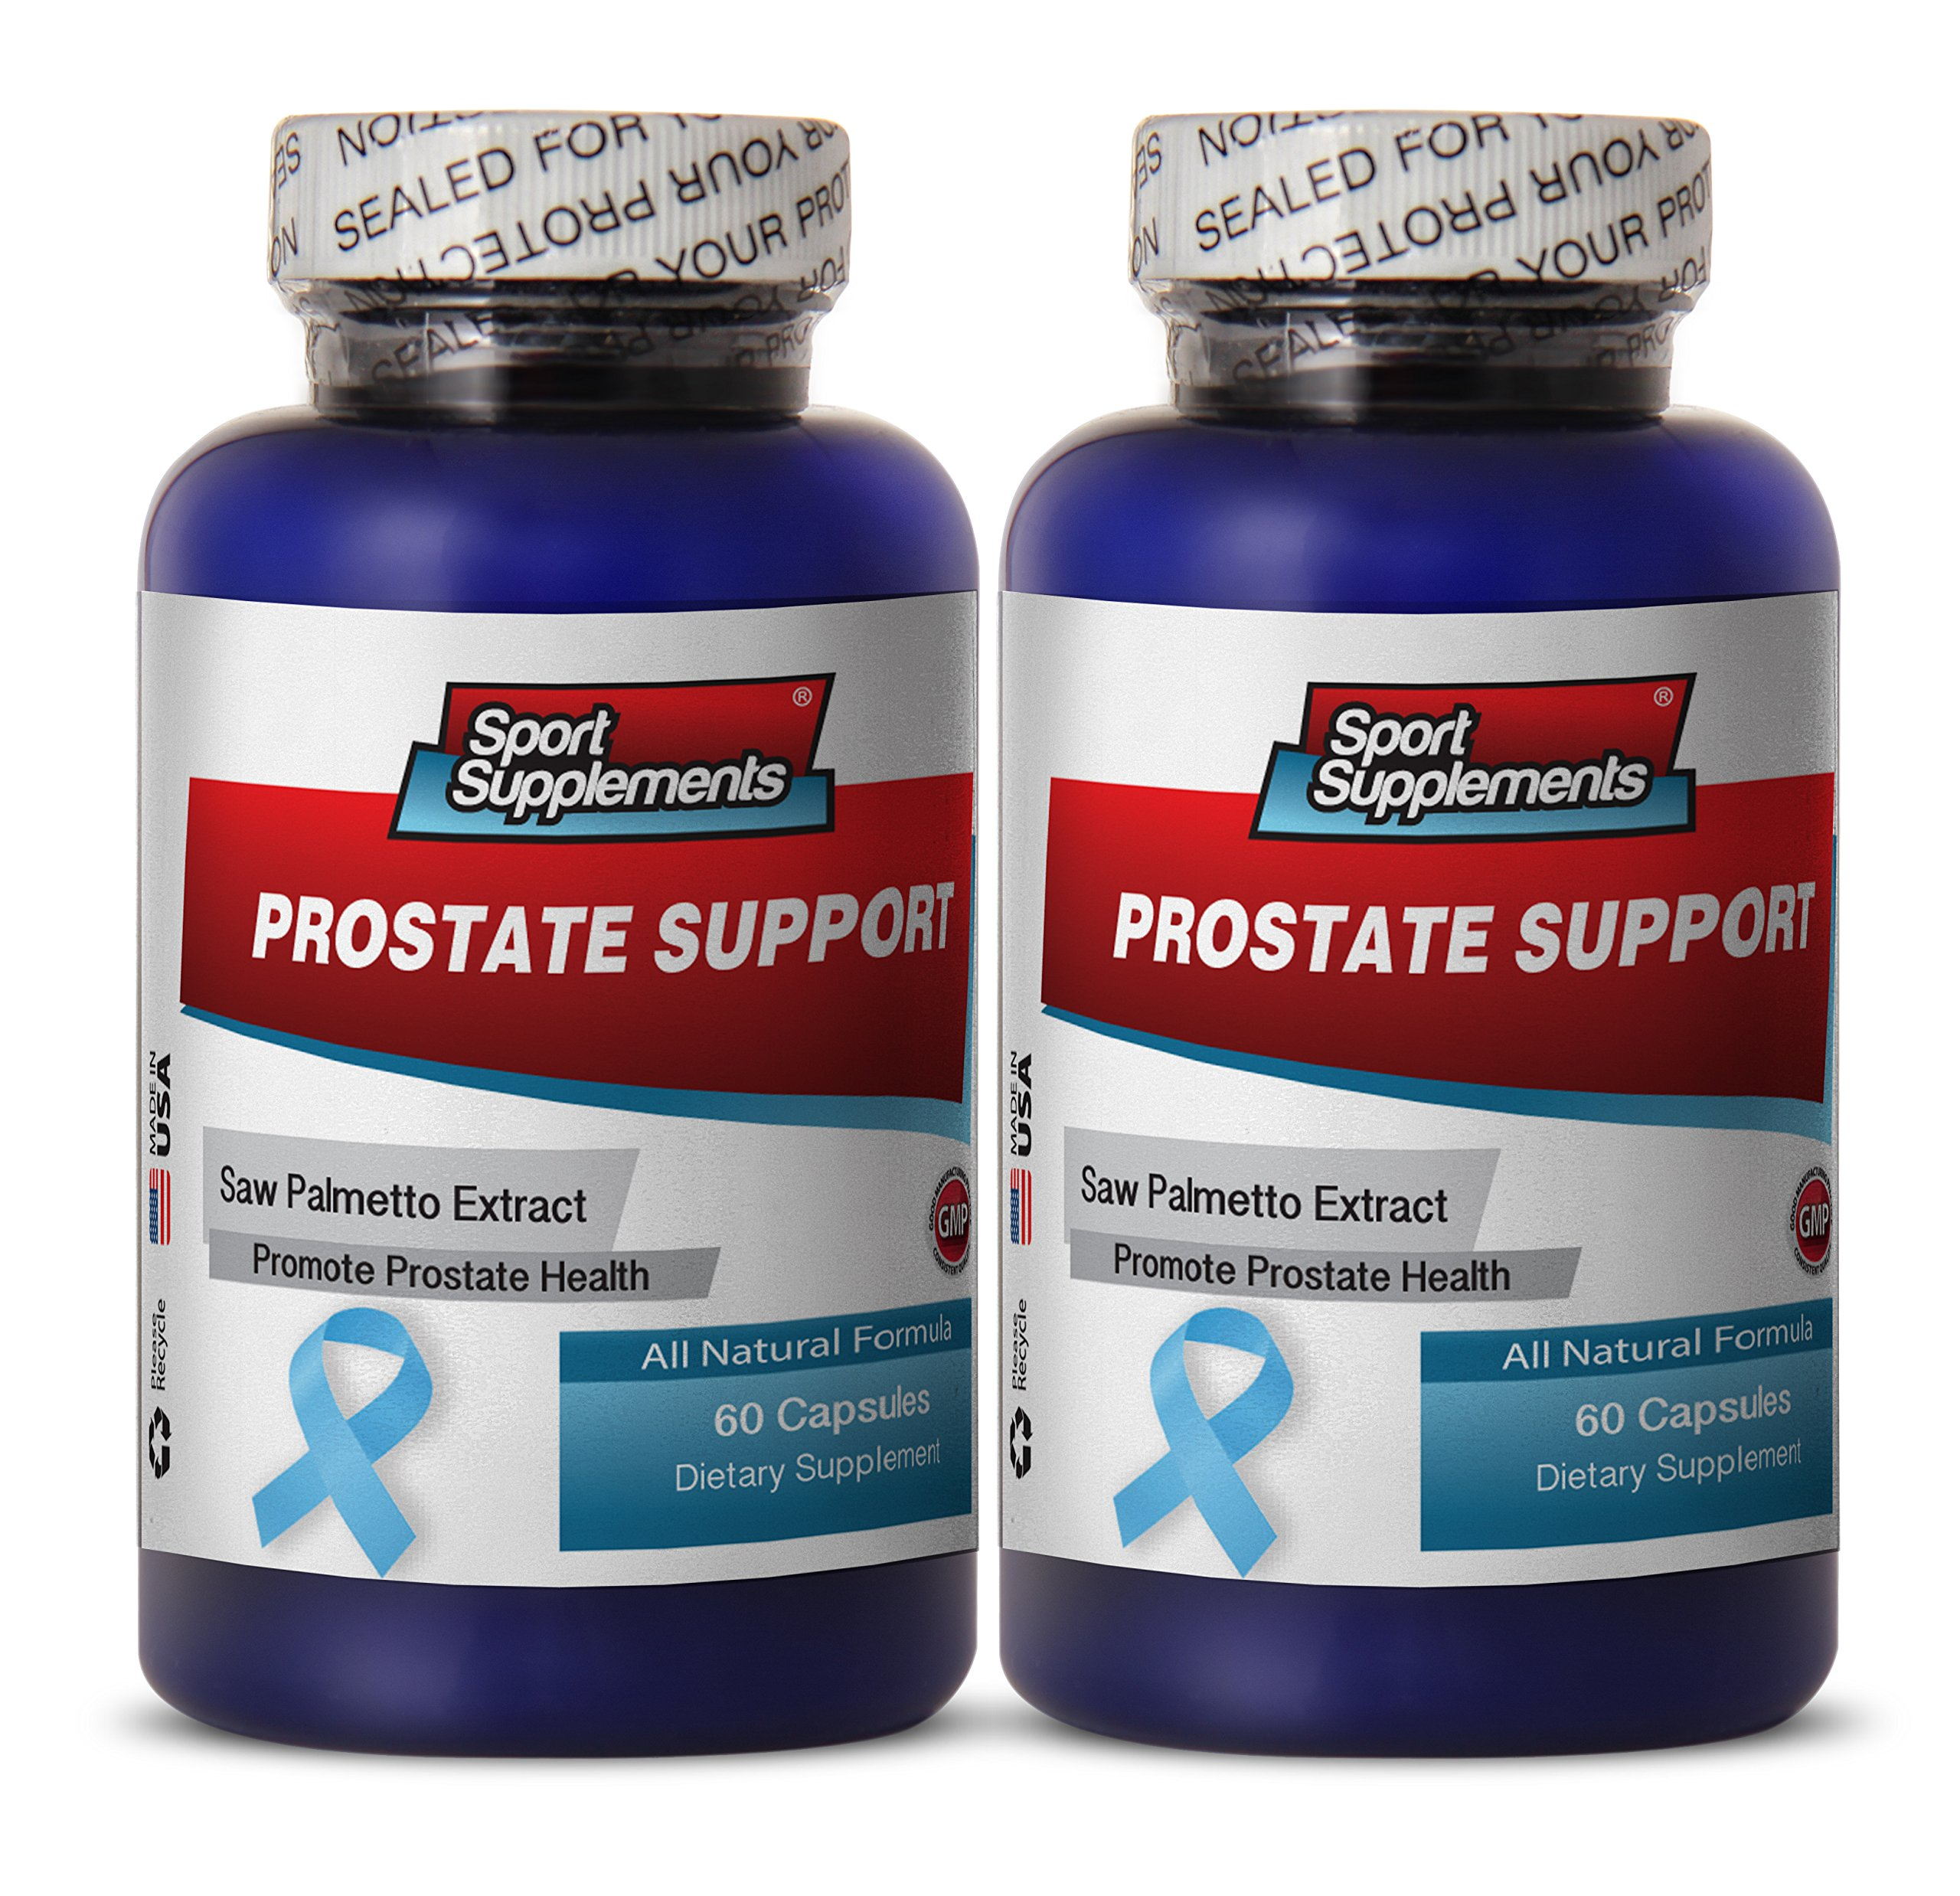 Prostate vitamins - PROSTATE SUPPORT ALL NATURAL FORMULA - Saw palmetto herbs - 2 Bottles 120 Capsules by Sport Supplements